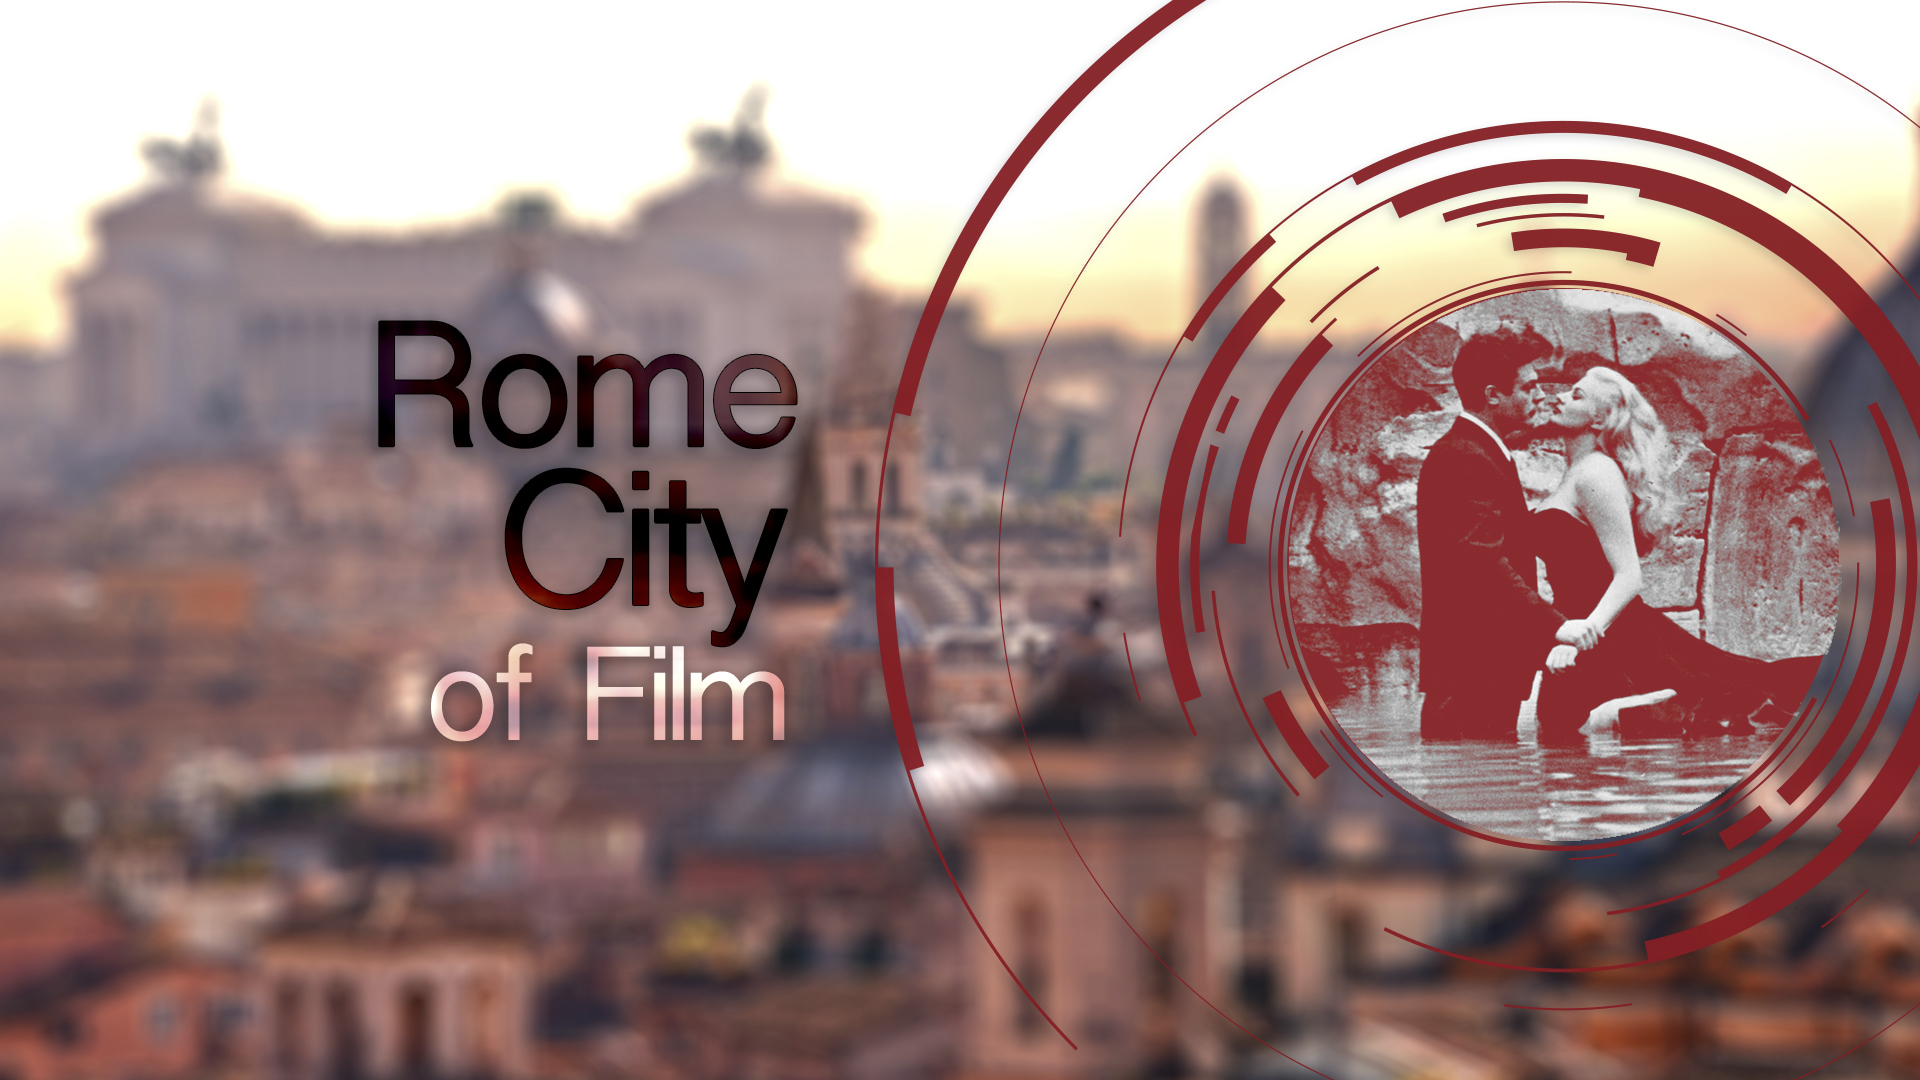 Rome City of Film (Bianco e nero)2 copia